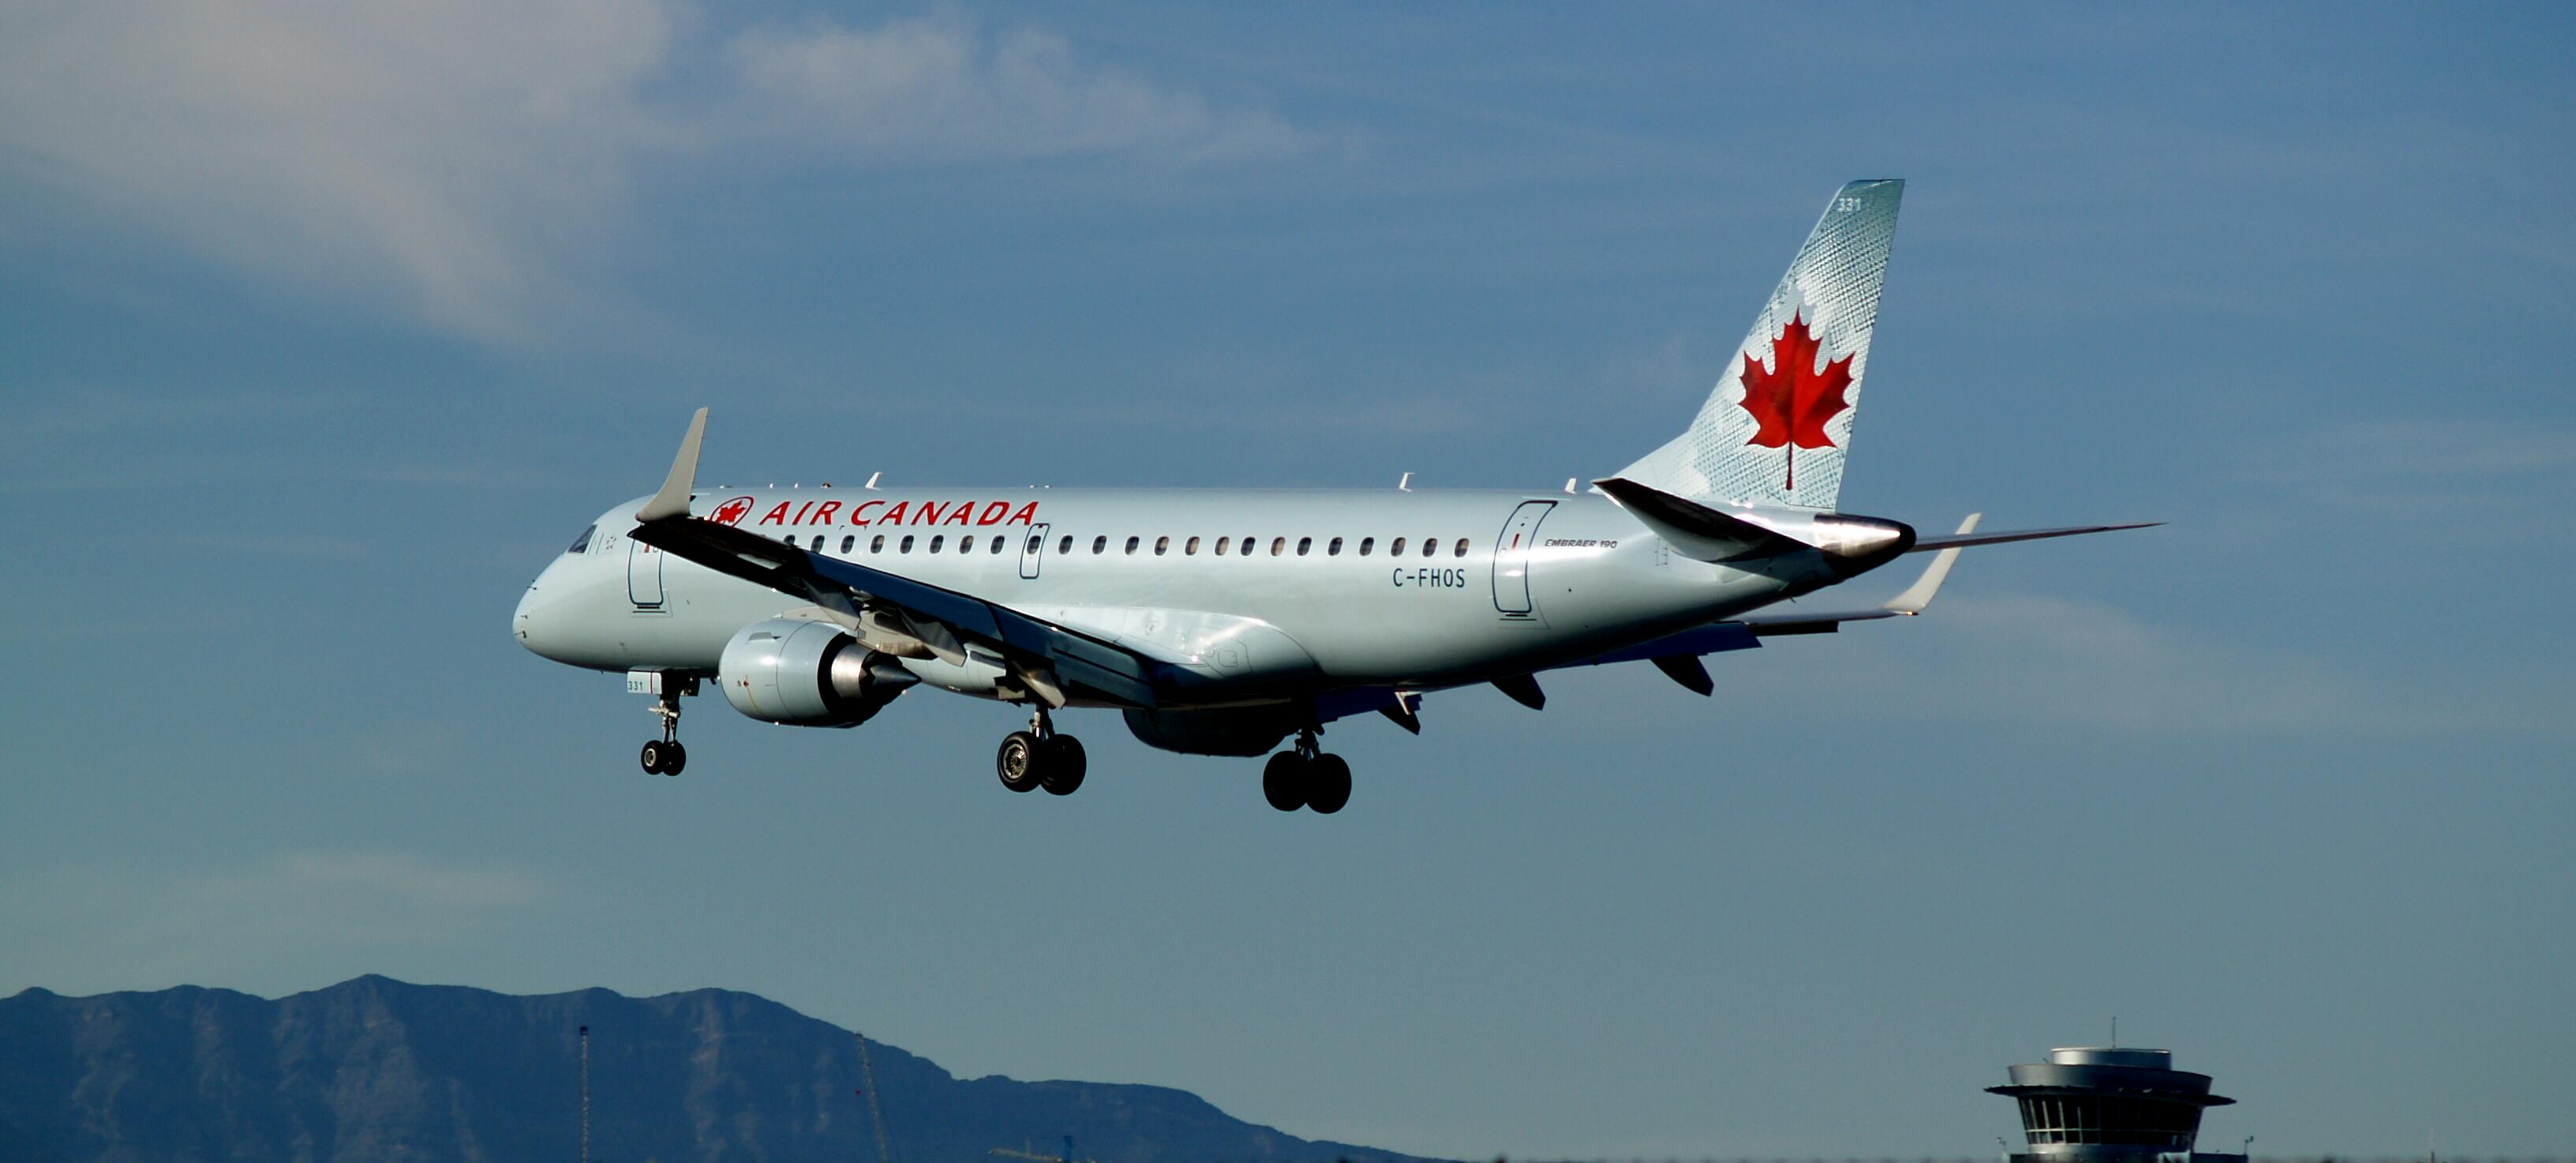 File:Air Canada... Flights To Vegas